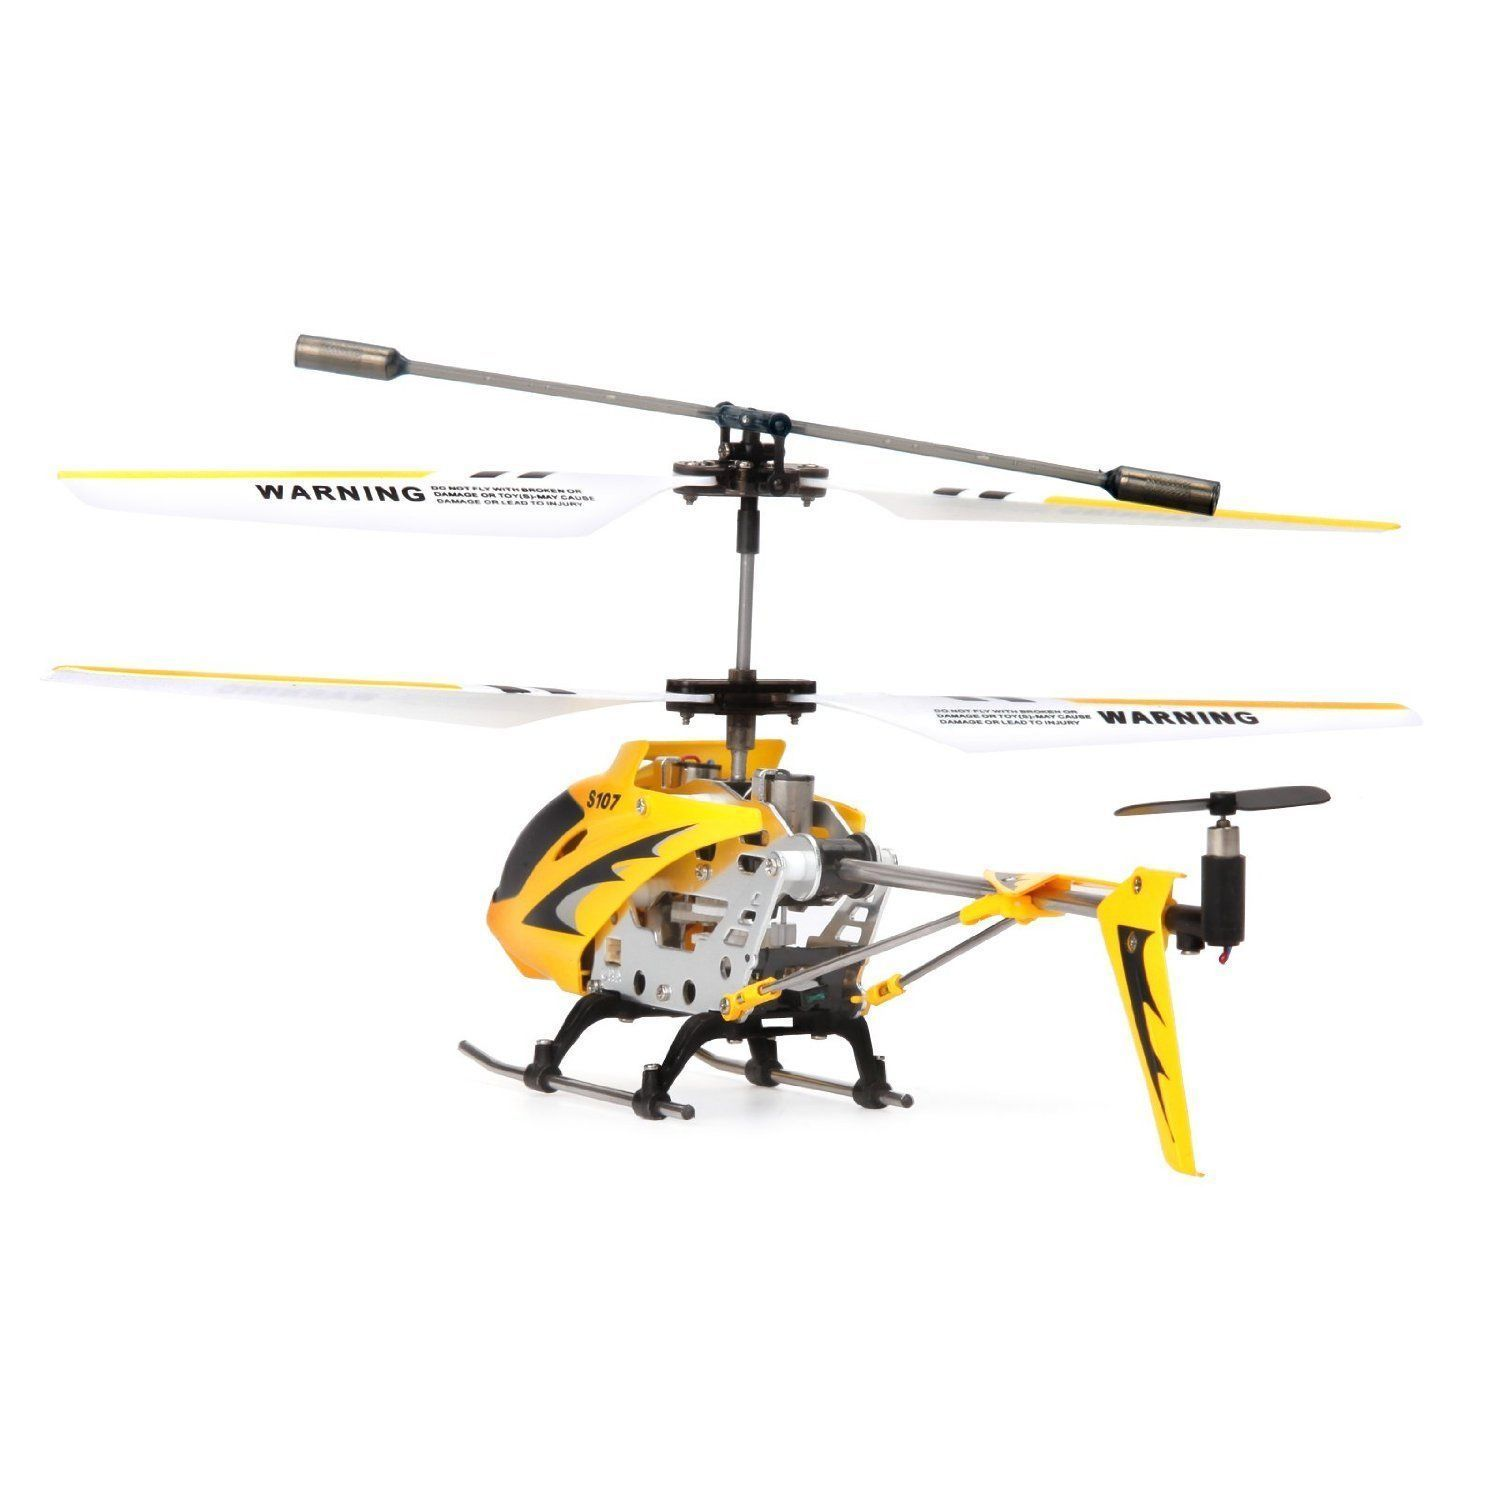 syma s107 g rc helicopter with 322074050886 on Index together with 351239544111 moreover 322074050886 also 469998894 furthermore Syma s107.